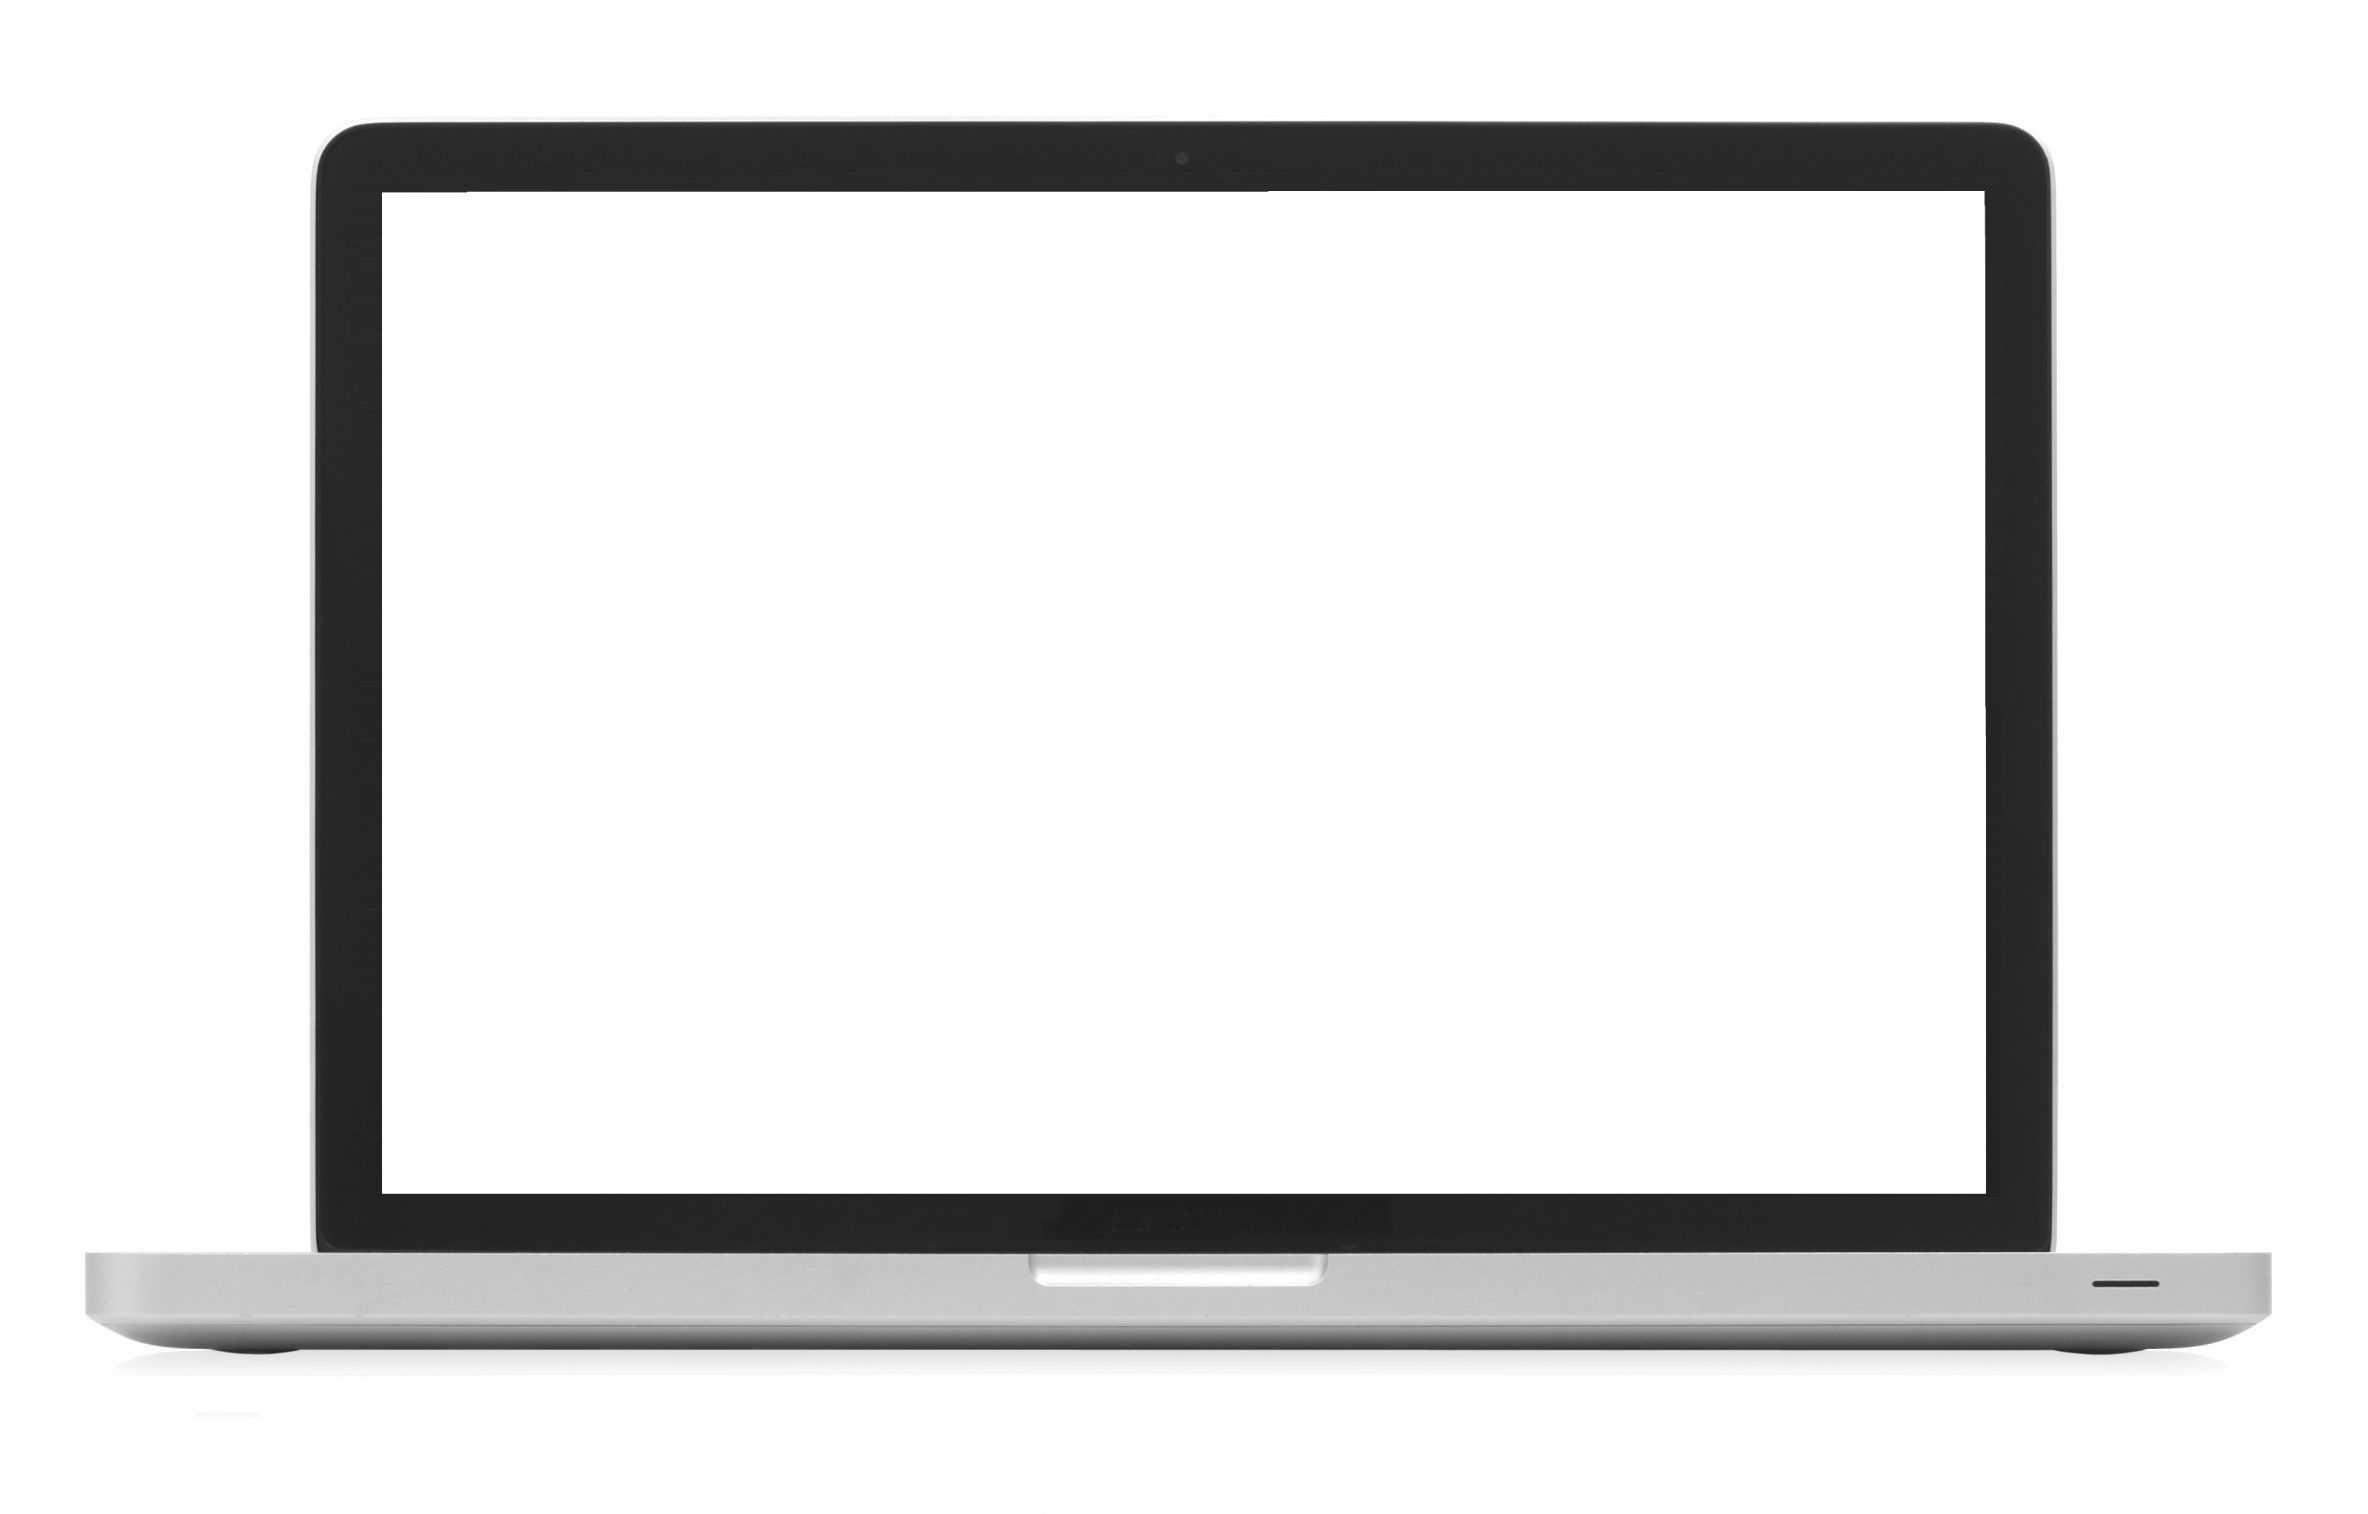 Mbp Cue Card Blank Template – Imgflip With Regard To Cue Card Template